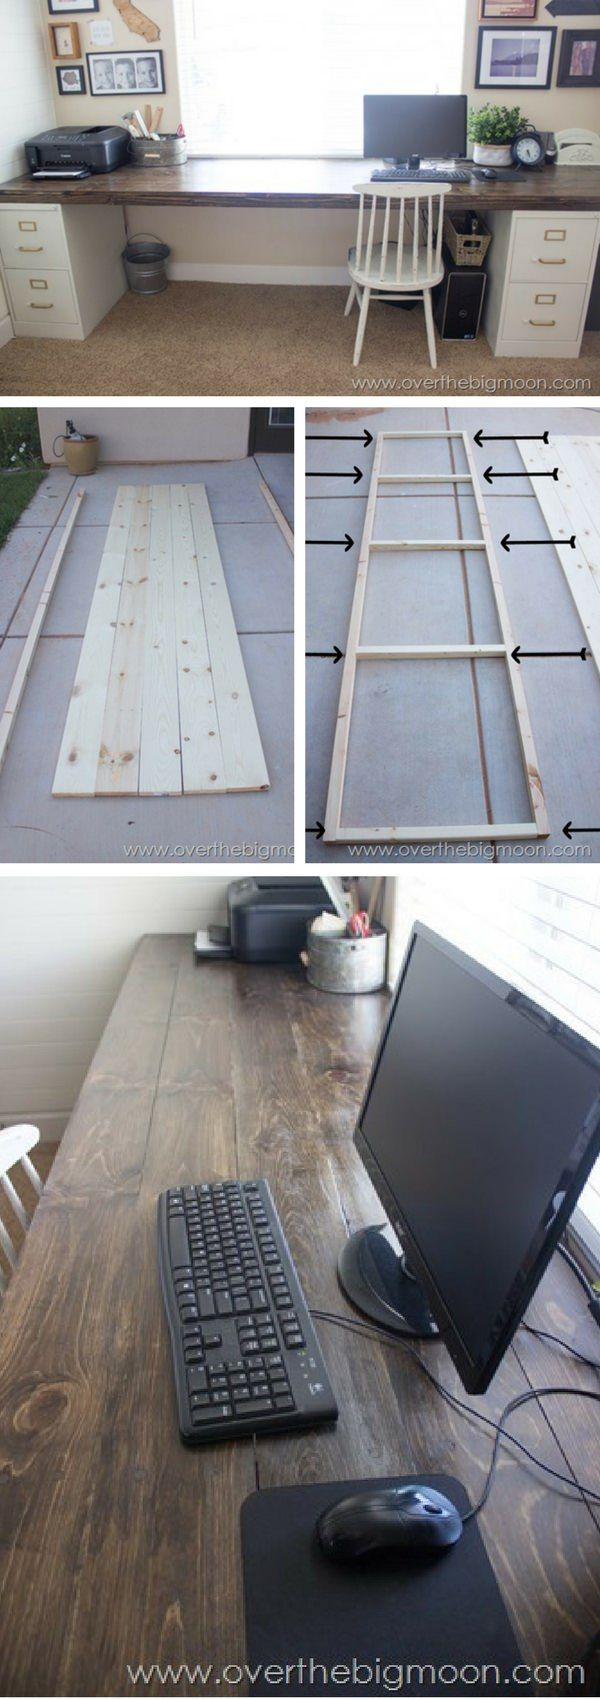 We have collected 21 DIY desk ideas and projects complete with tutorials.